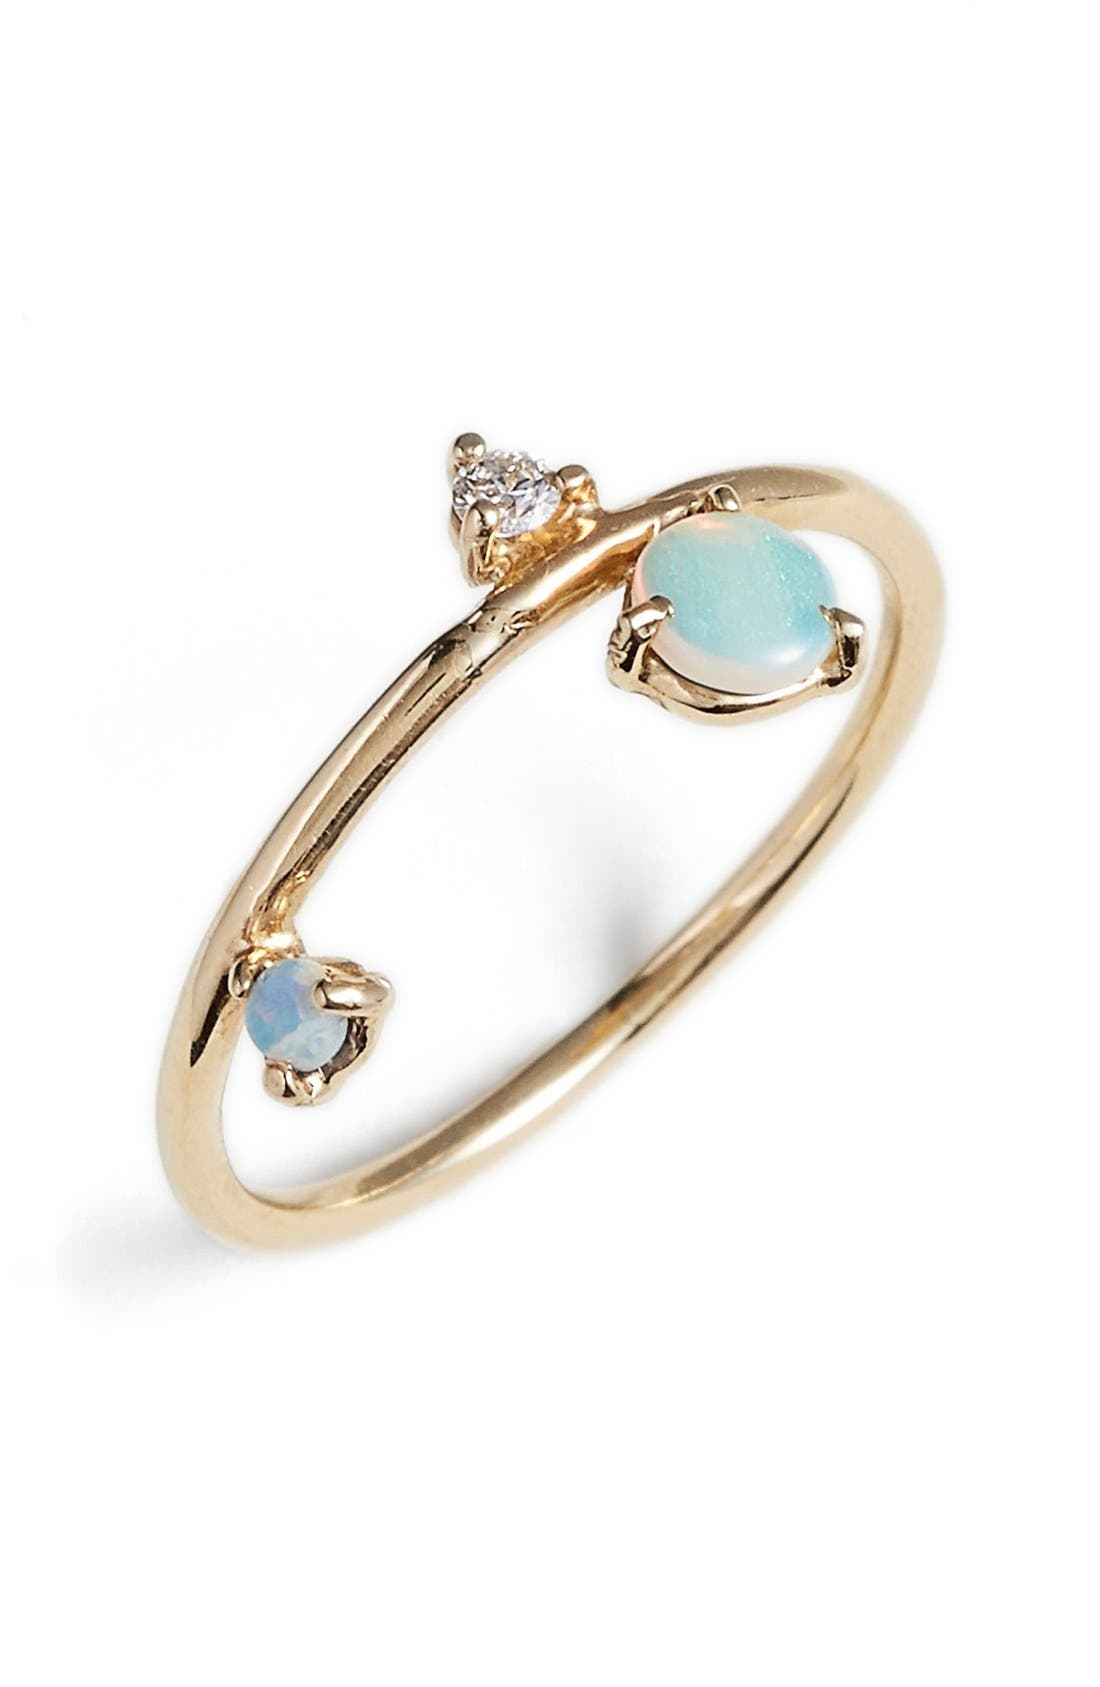 Counting Collection Three-Step Balloon Opal & Diamond Ring,                             Main thumbnail 1, color,                             YELLOW GOLD